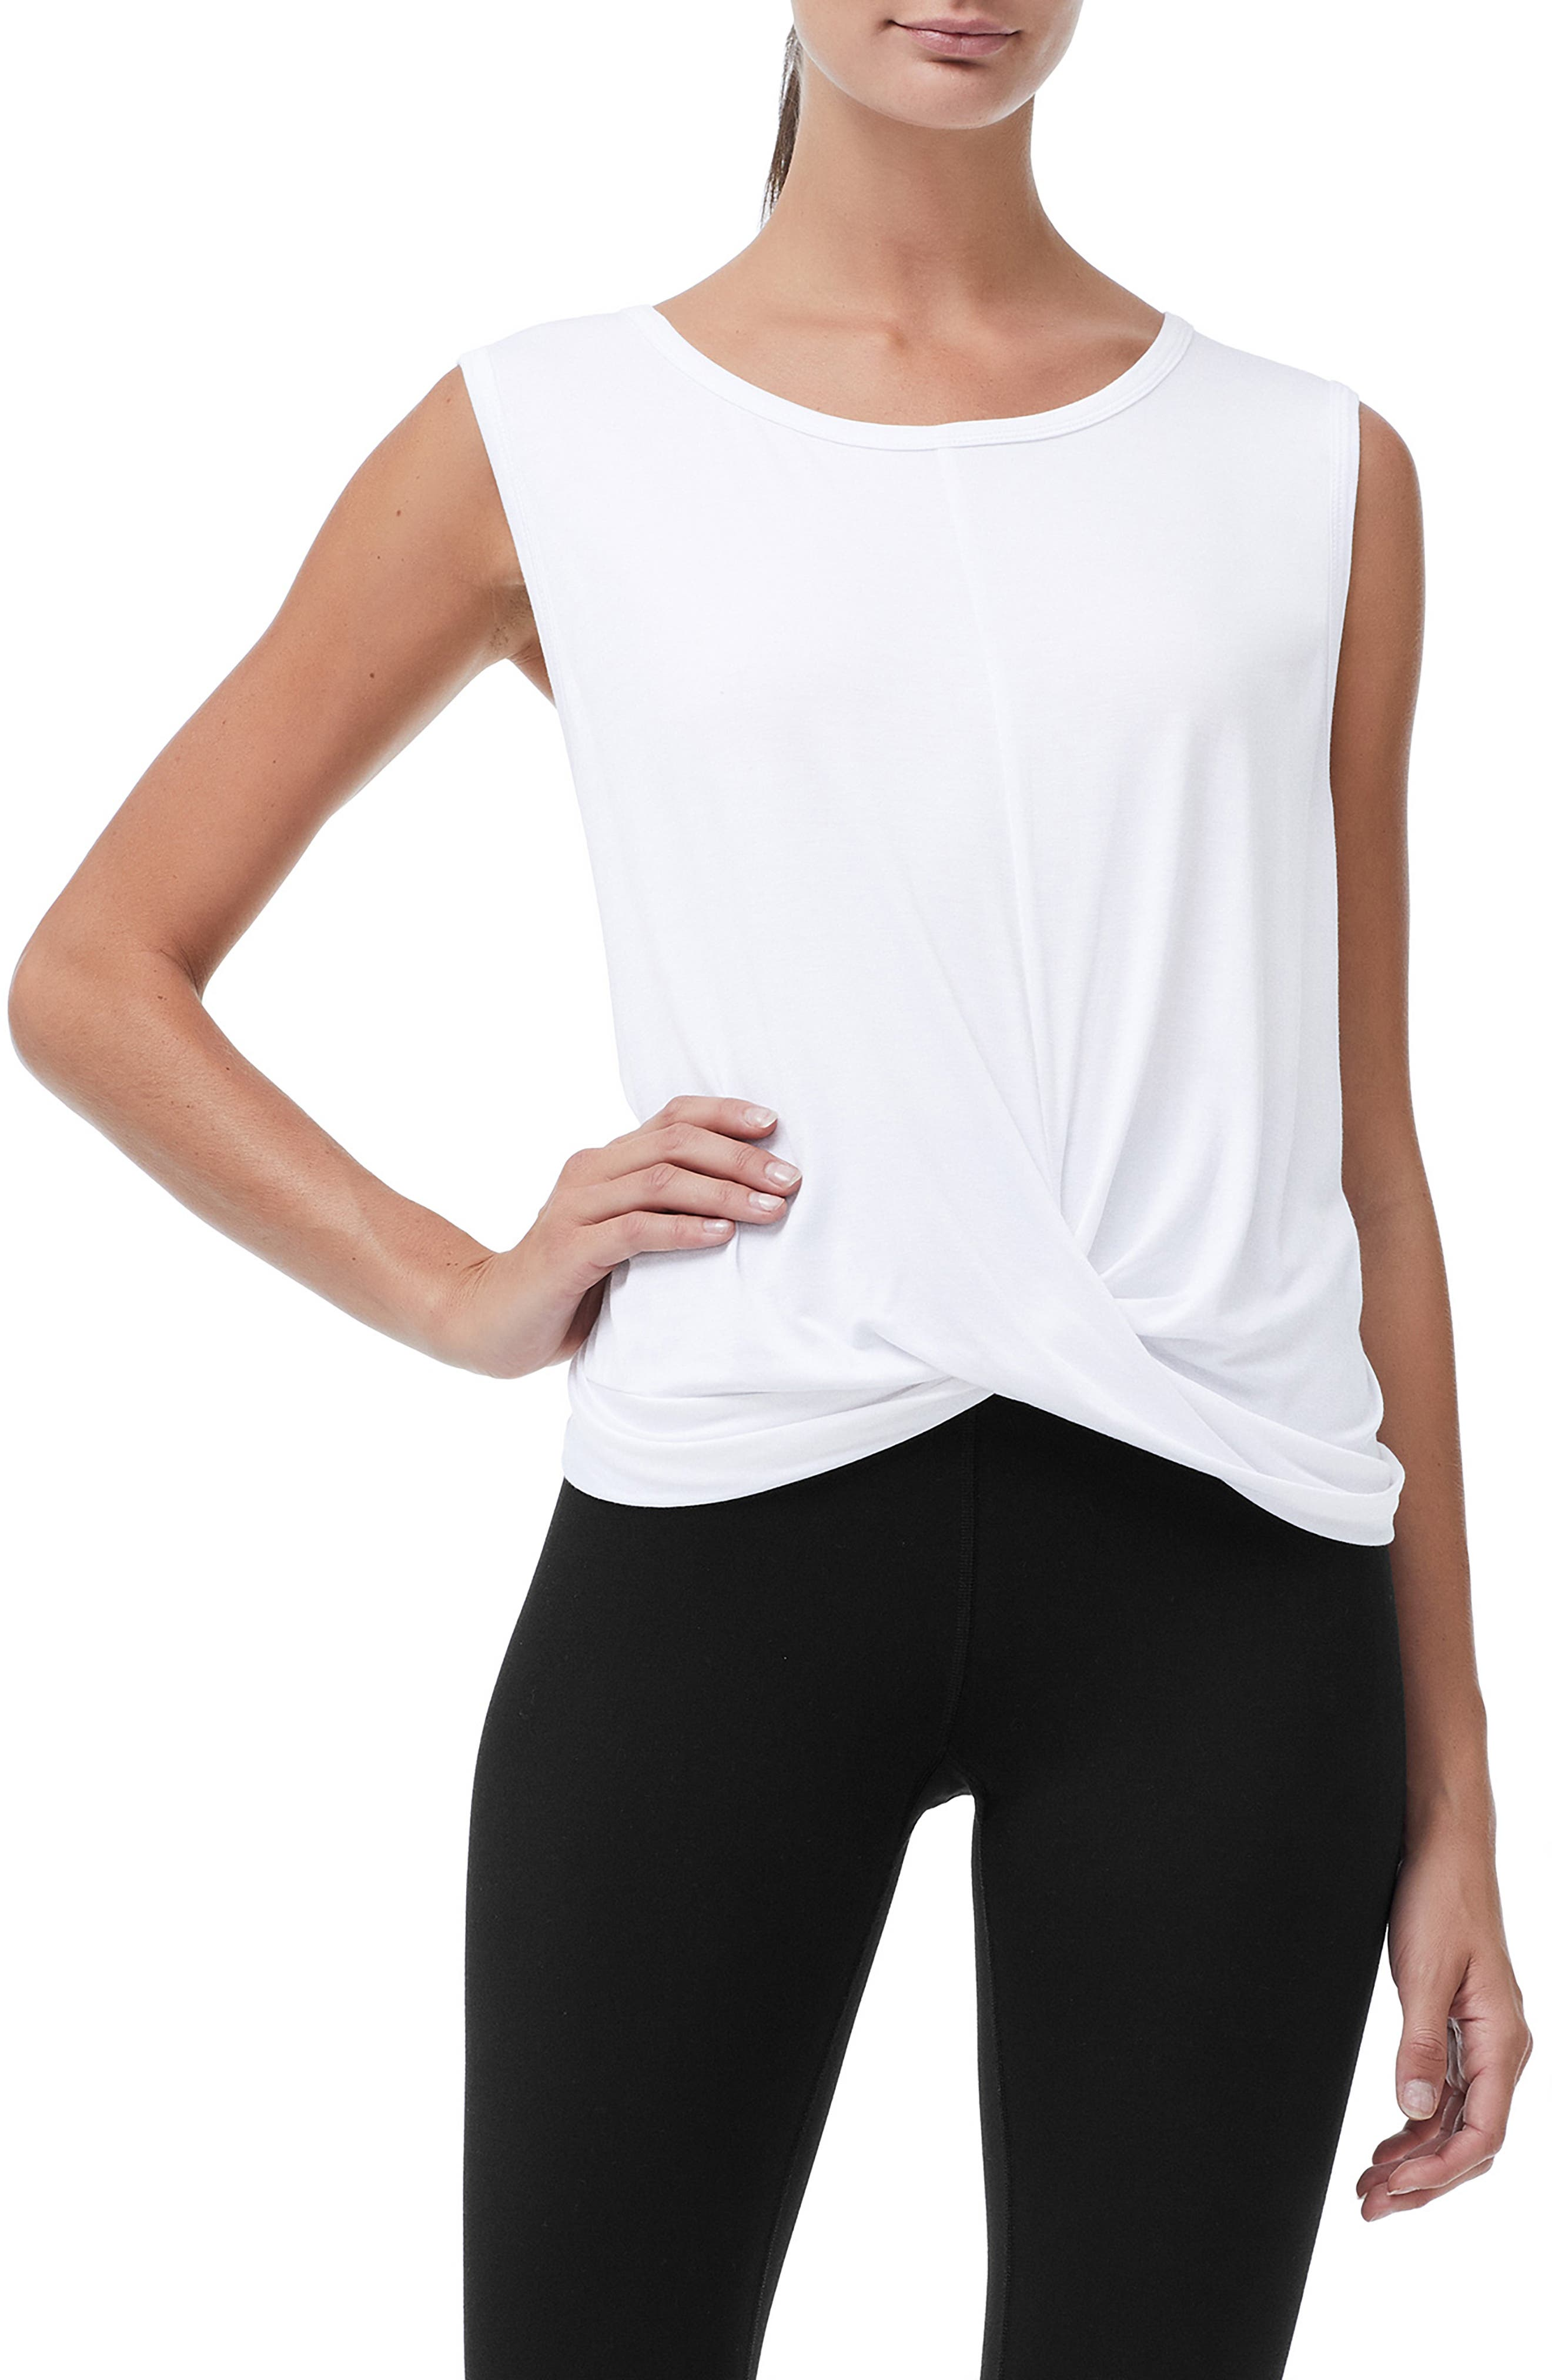 Knotted Tank Top,                             Main thumbnail 1, color,                             WHITE001